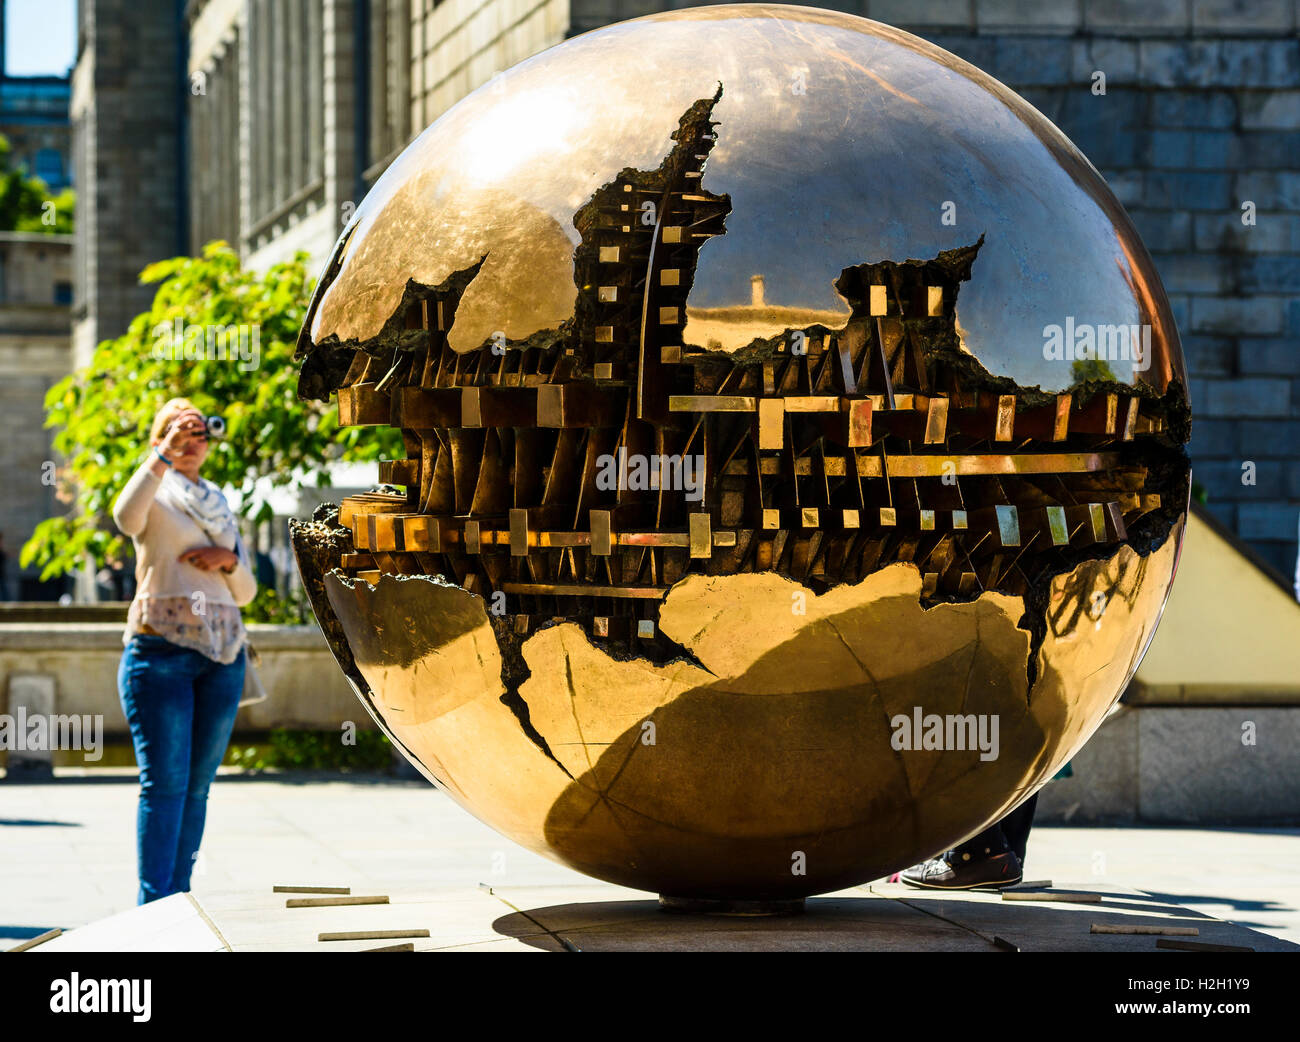 Photographing Sphere Within Sphere (Sfera con sfera) sculpture by Arnaldo Pomodoro, Trinity College Dublin, Ireland - Stock Image